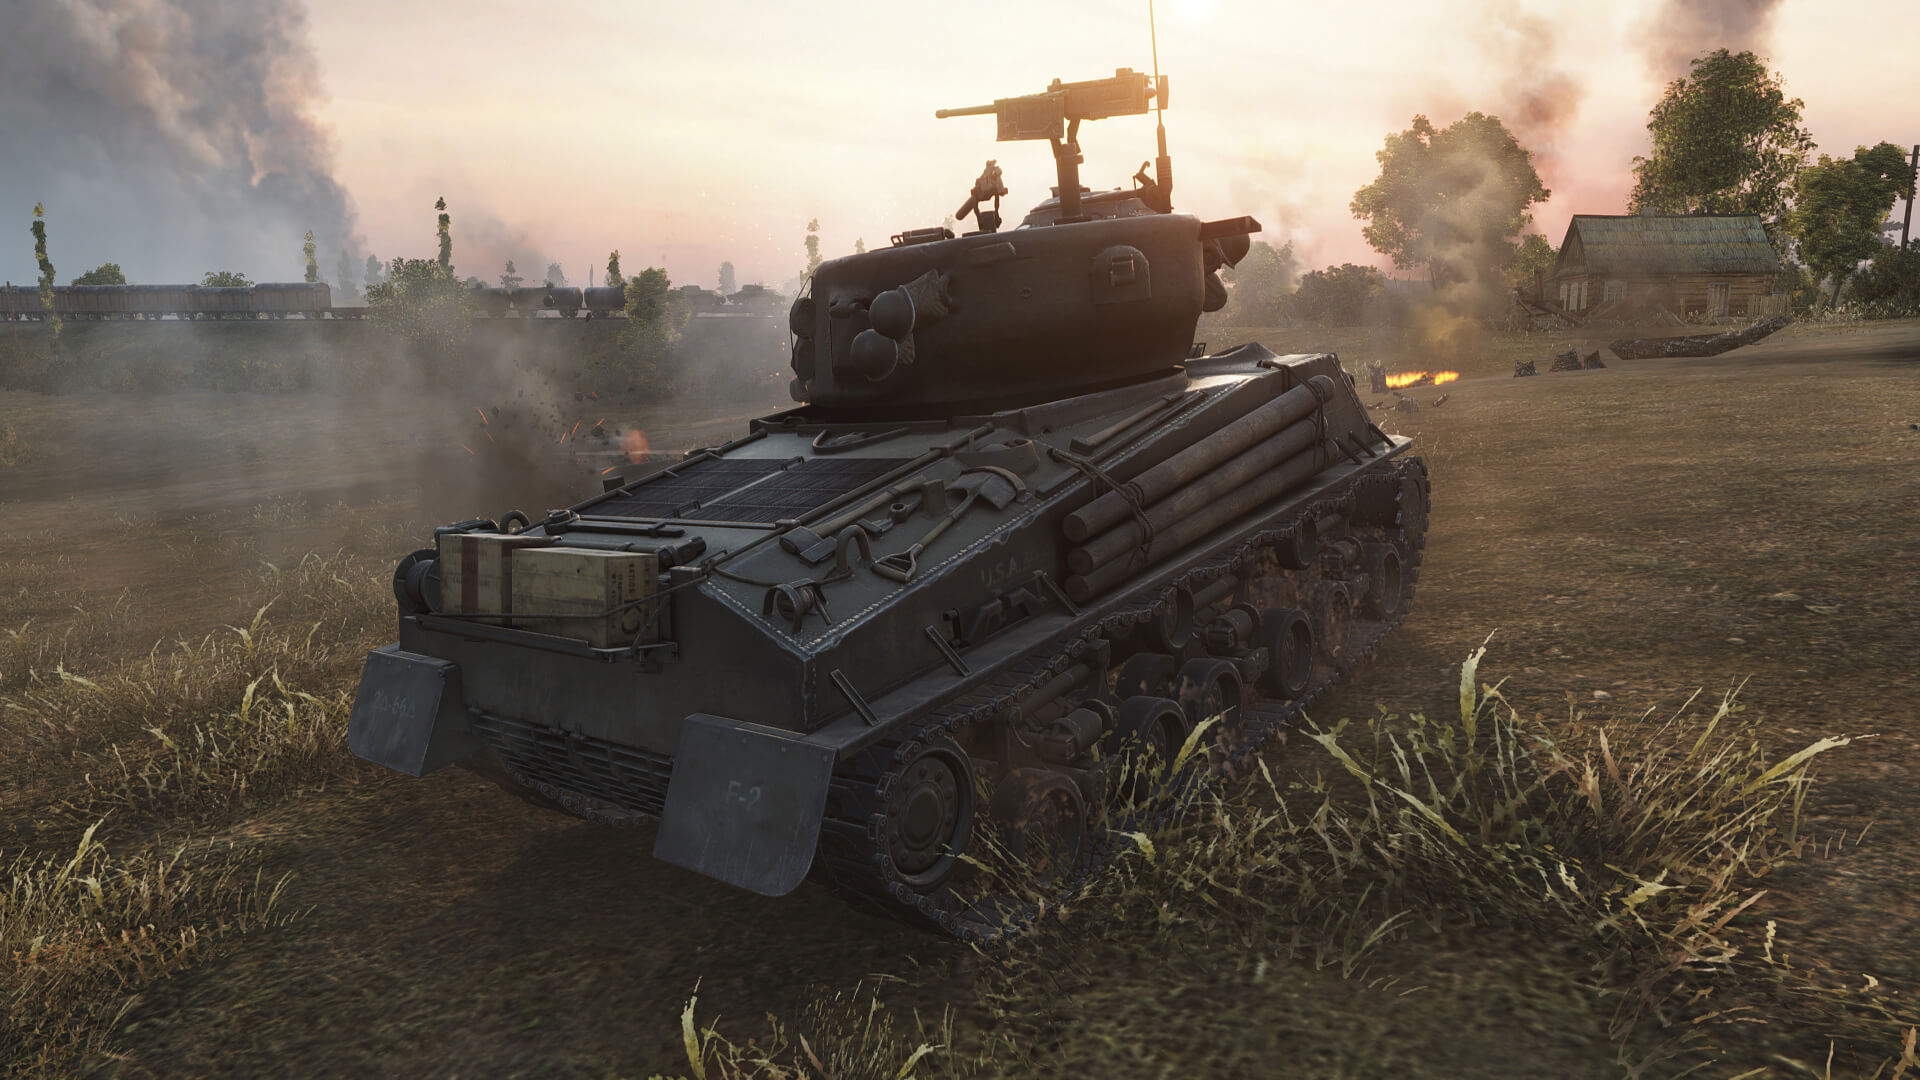 Blue apron alternatives reddit - Studying The Above Tier 10 Tank Breakdowns Is Certainly A Great Way To Improve Your World Of Tanks Skills And Prepare For When They Are Released Into The